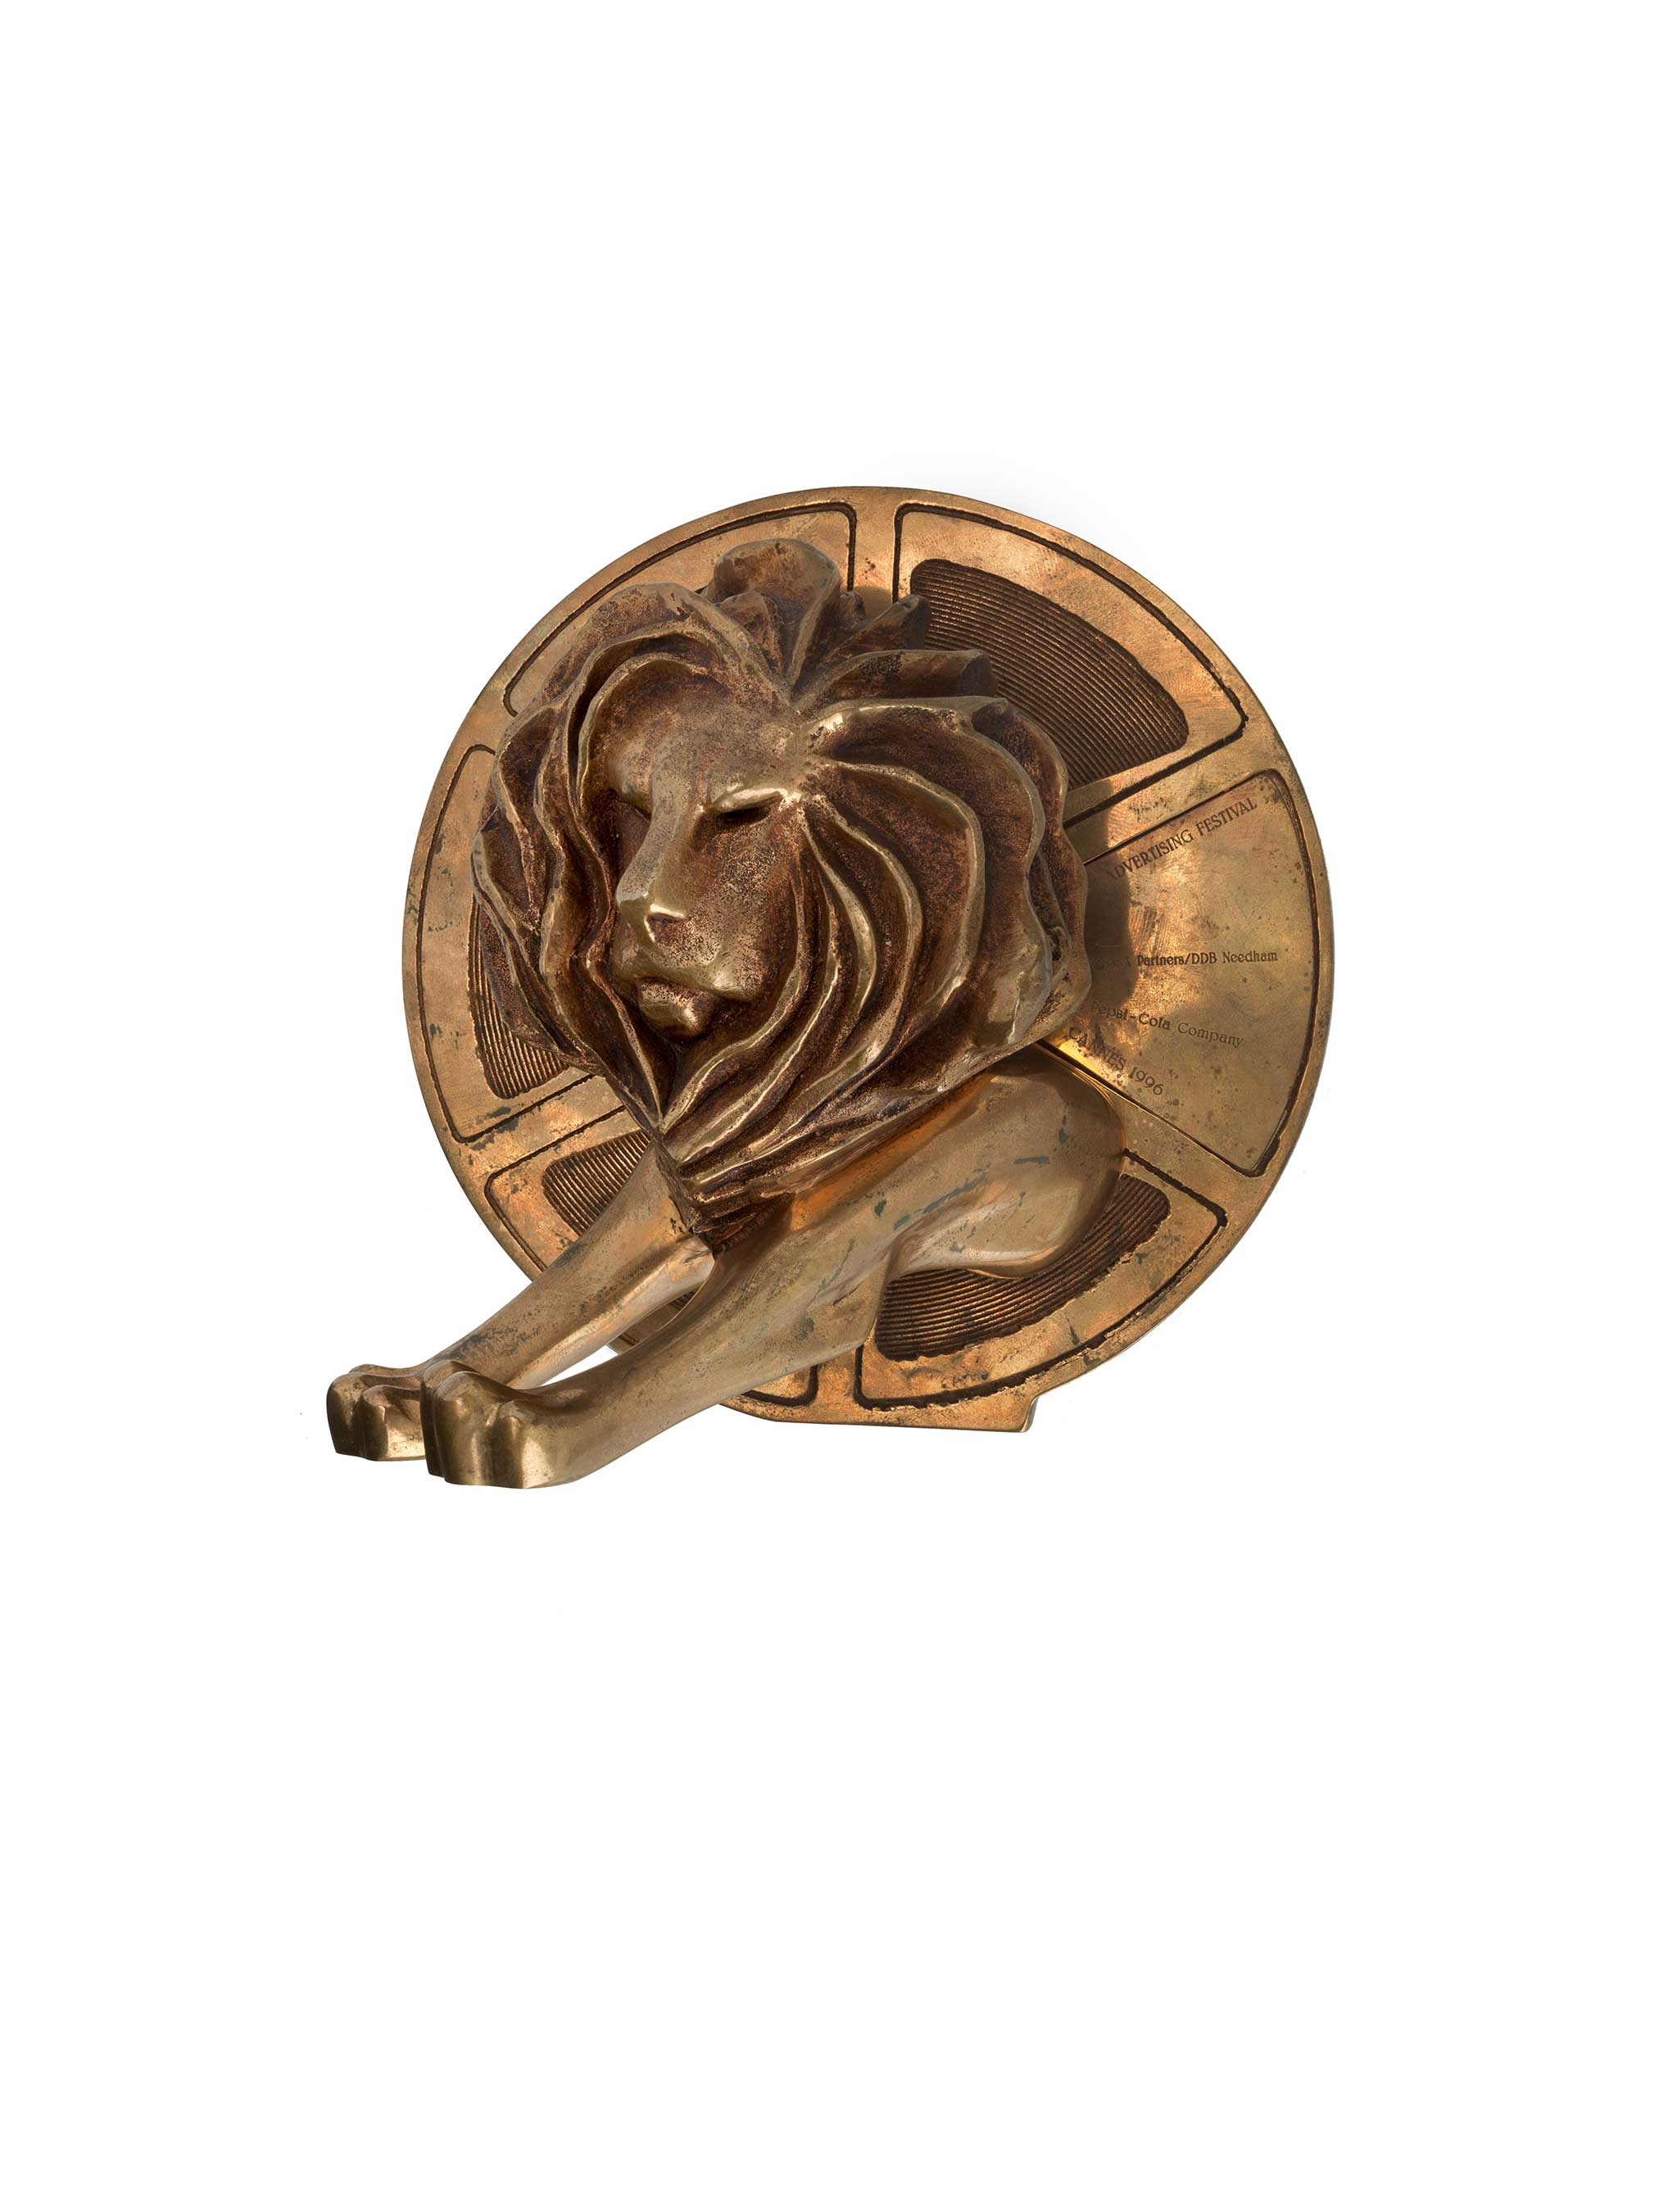 Dieste Inc., first Cannes Lion awarded to a U.S. Hispanic firm in 1996